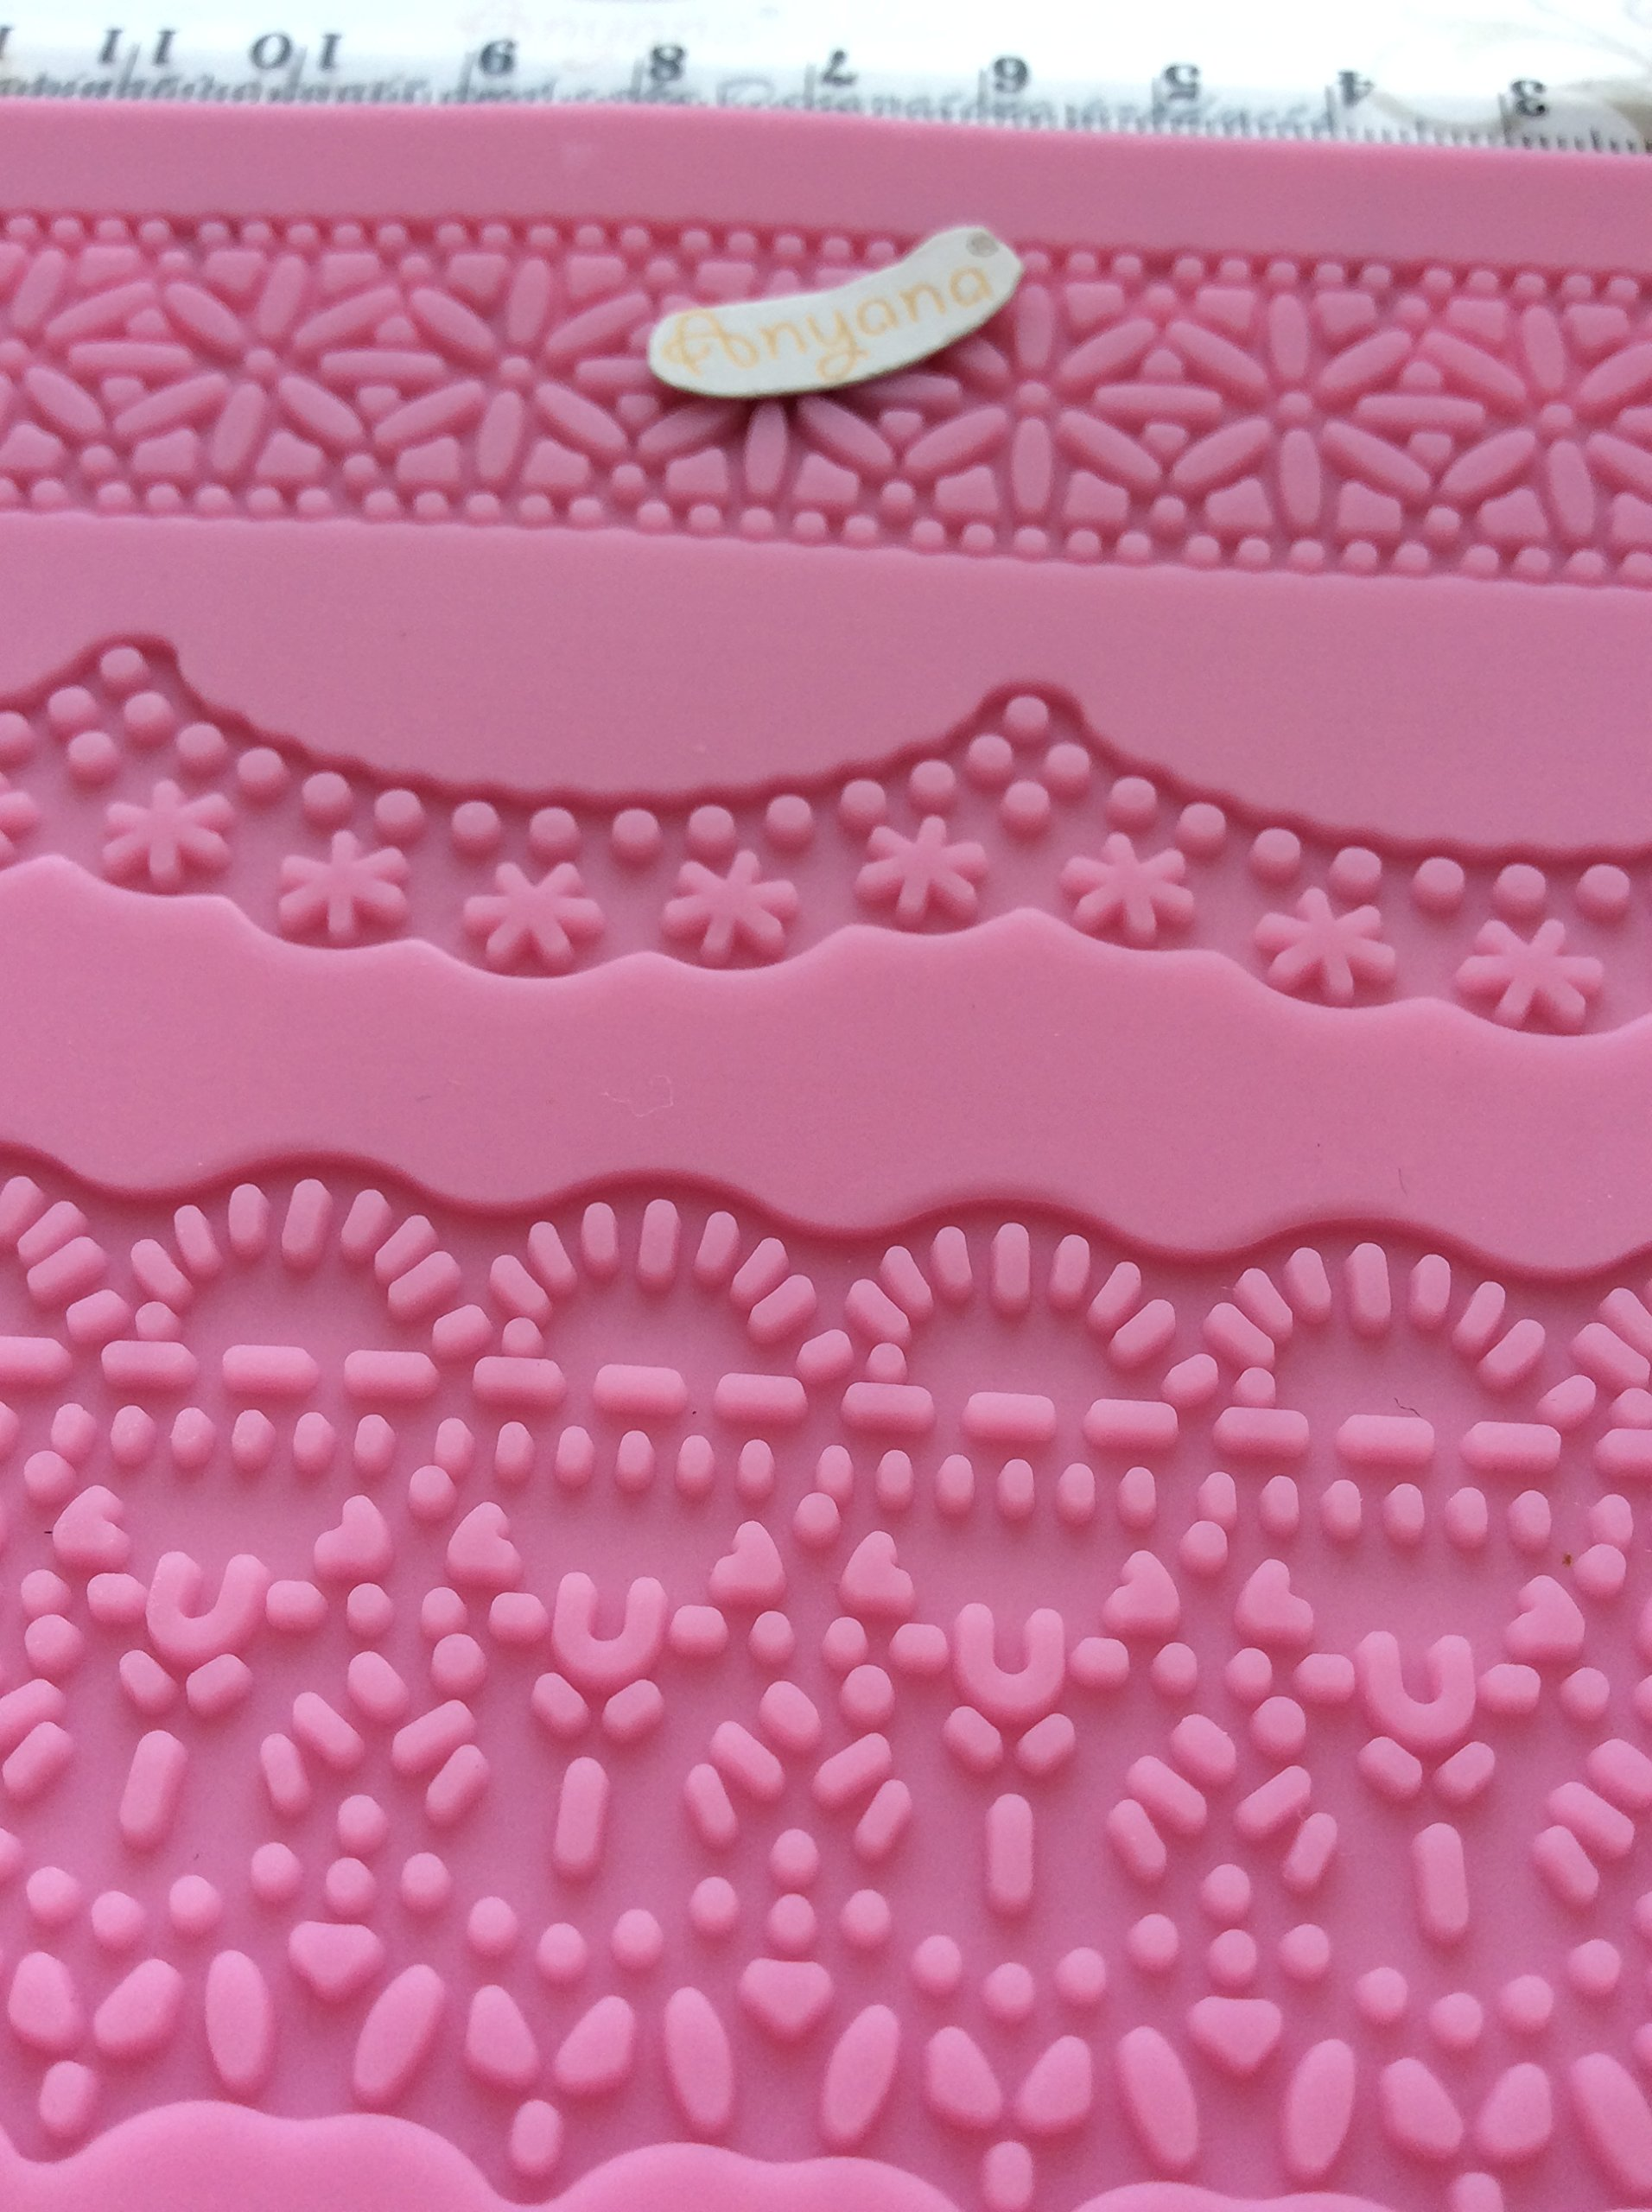 Anyana set of 4 huge 15.5'' sugar edible cake silicone fondant impression lace mat cake decorating mold gum paste cupcake topper tool icing candy imprint baking moulds sugarcraft trimming flower by Anyana (Image #9)